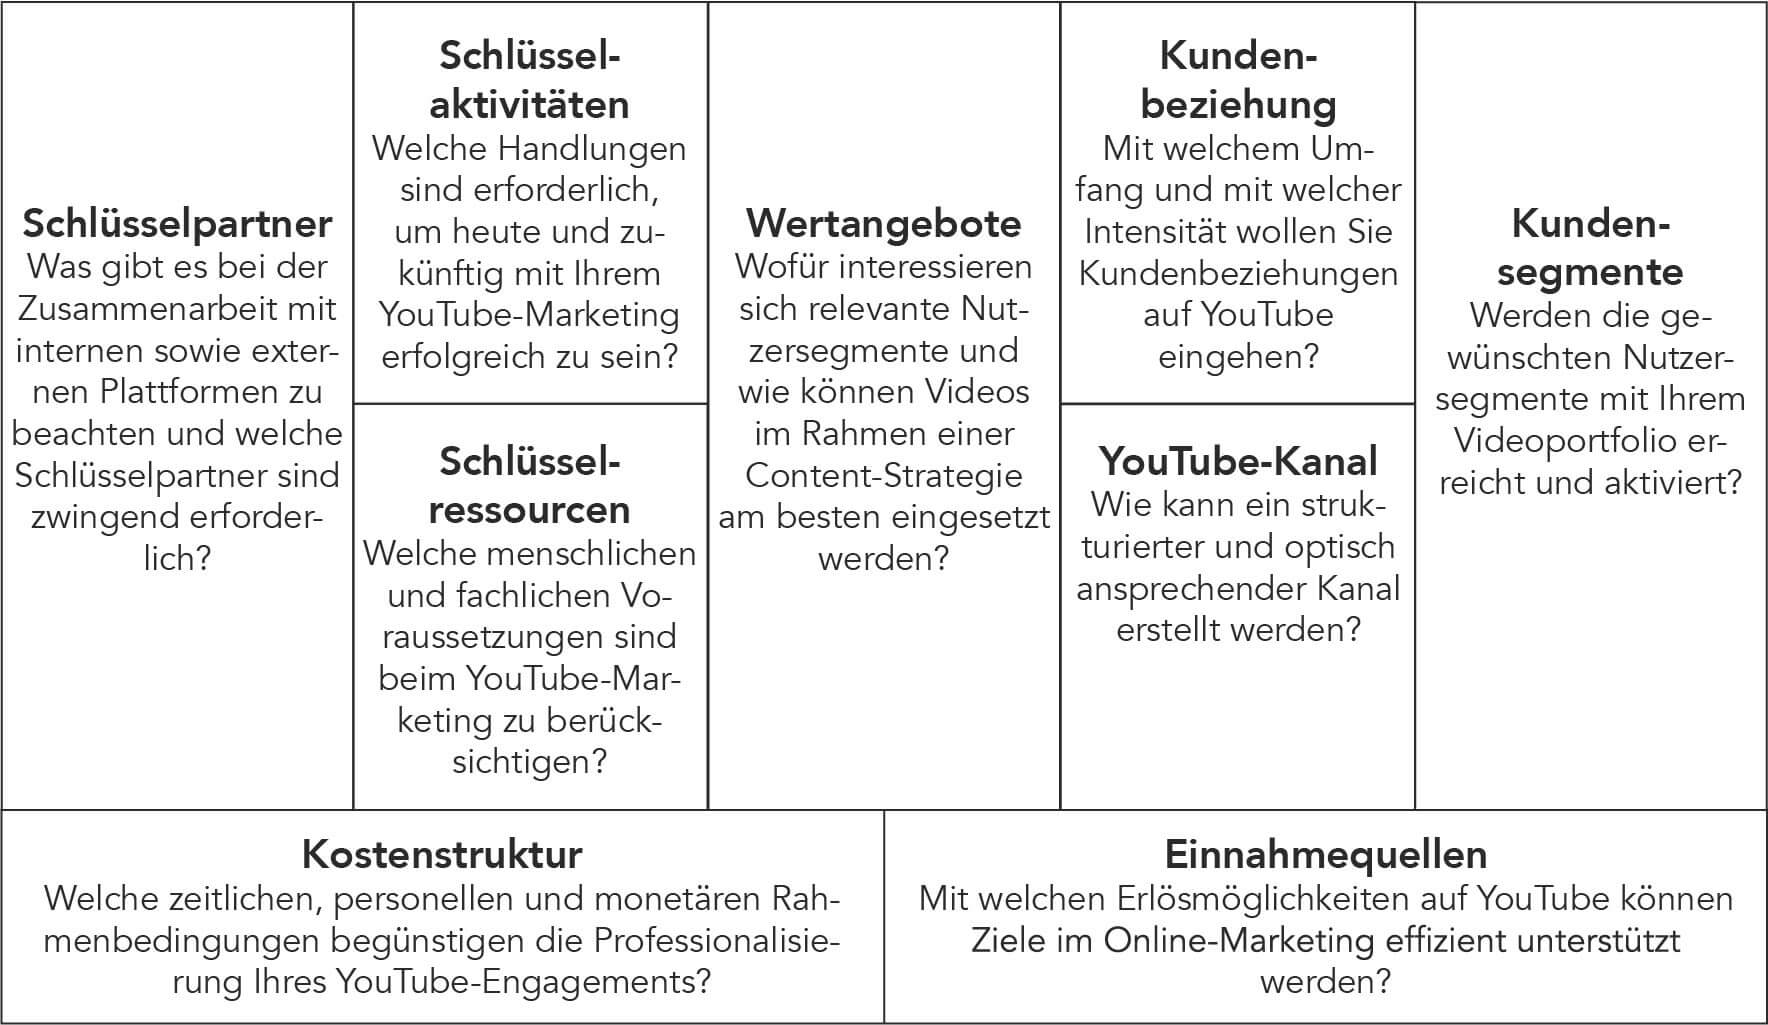 Das Business Model Canvas für eine YouTube-Strategie (eigene Darstellung, Quelle: C. Seehaus, Video-Marketing mit YouTube, S.61.)